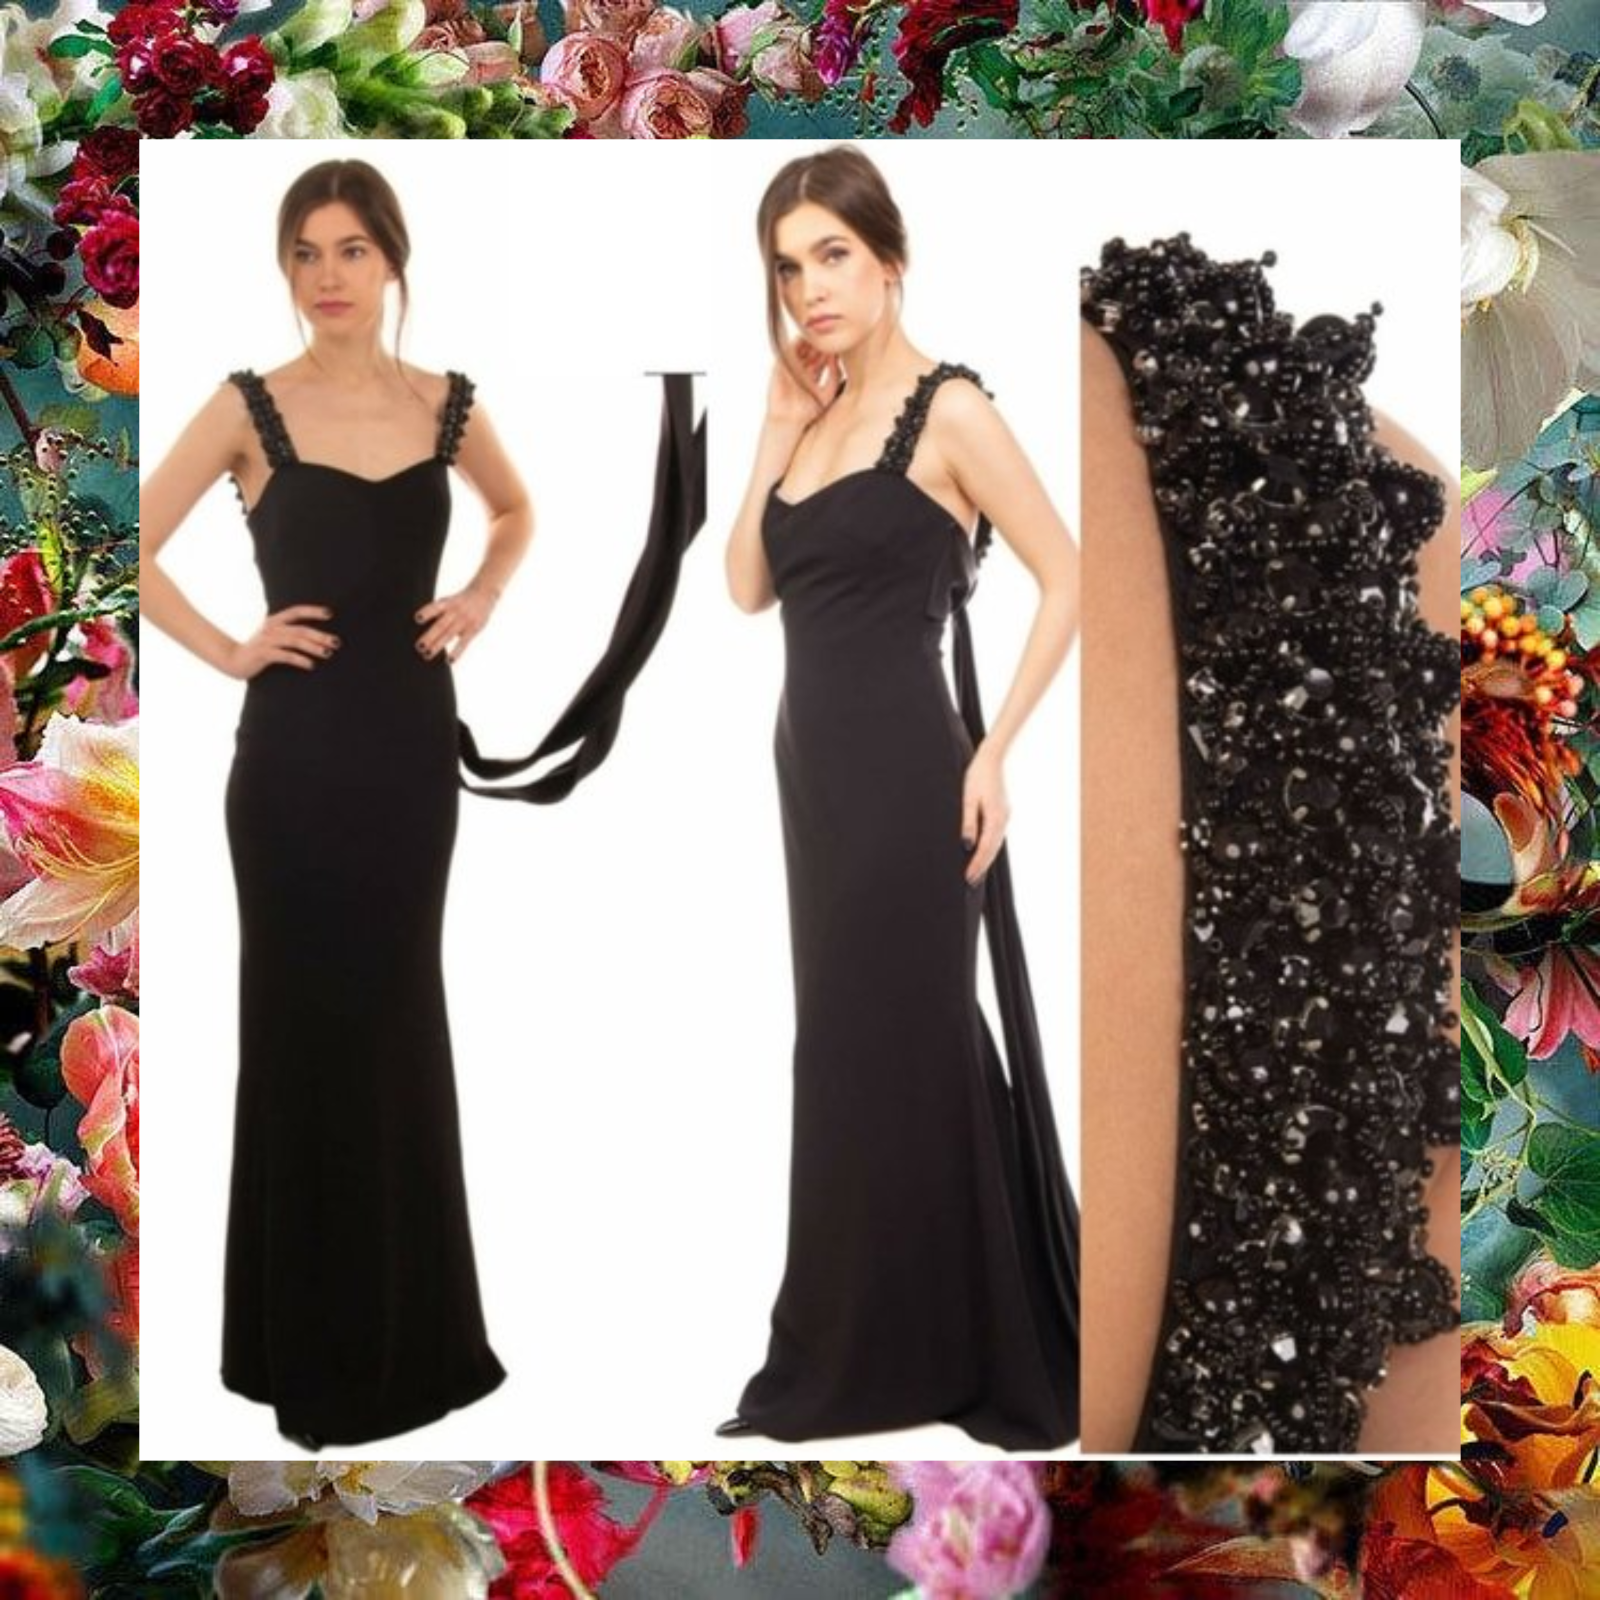 ,100 NWT BADGLEY MISCHKA Black Satin-trimmed Embellished Trumpet Gown 4 Small